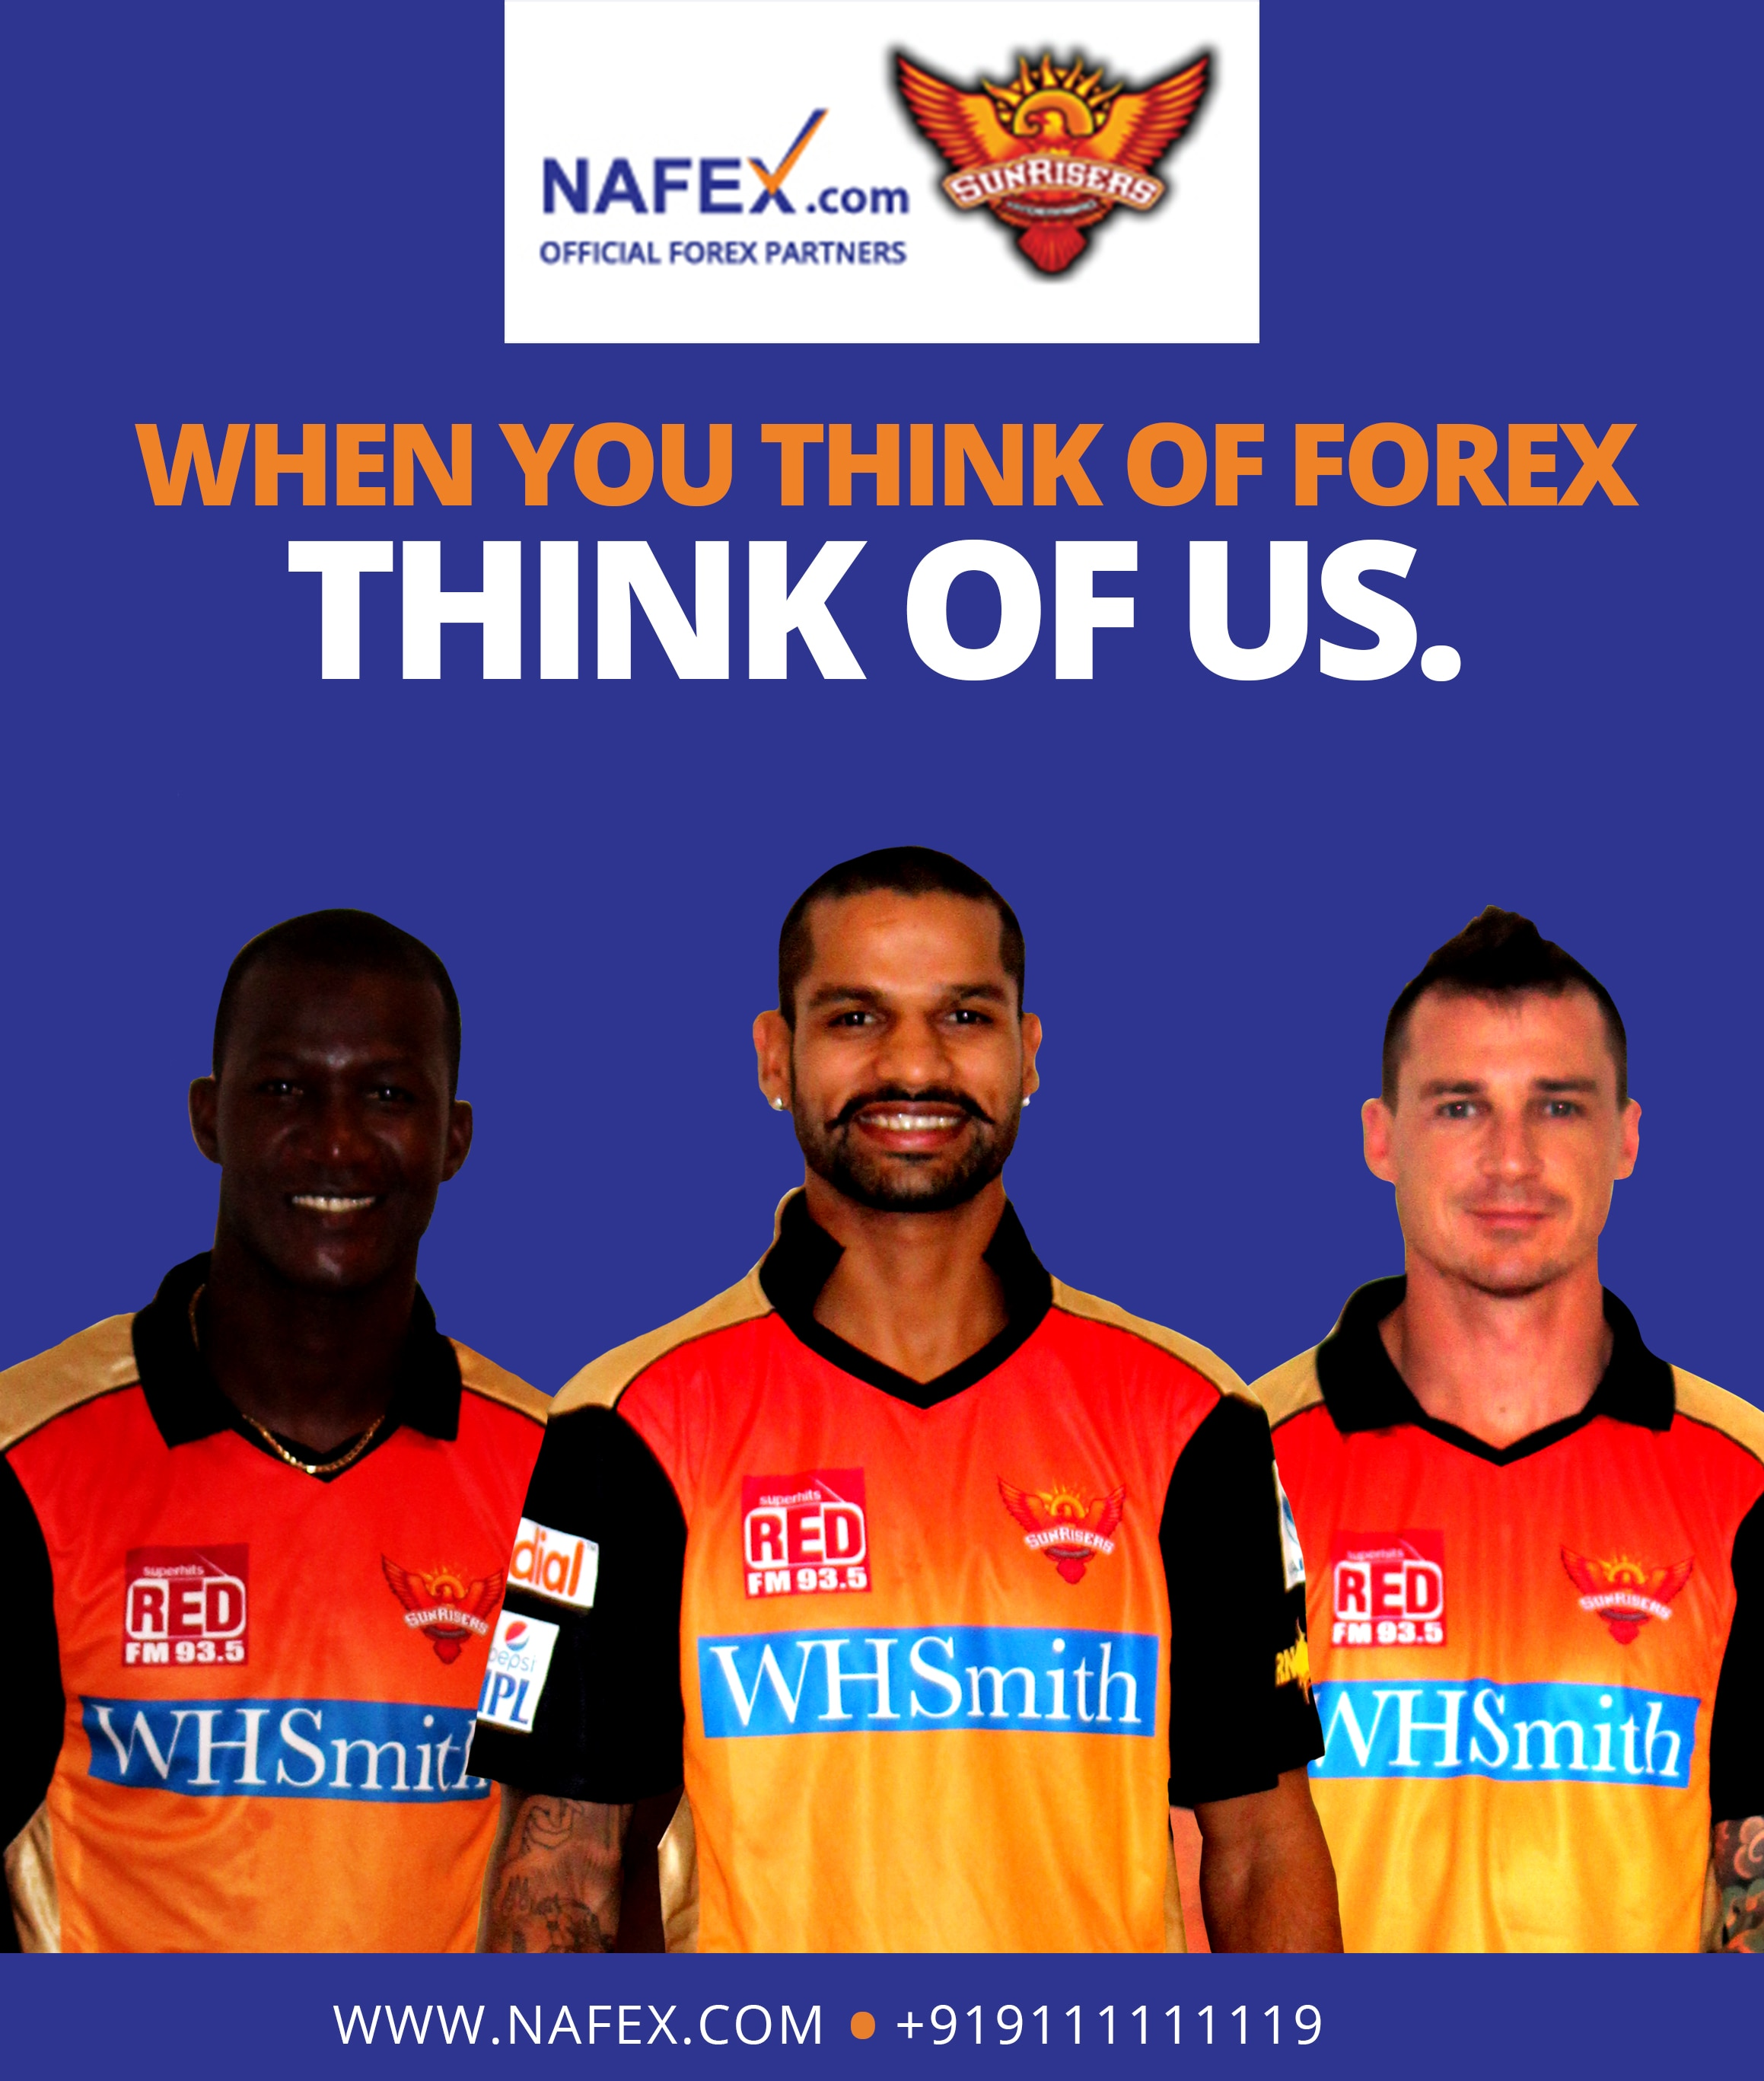 Nafex - Kalyani Nagar Foreign Currency Exchange Dealers Agents Kalyani Nagar, Online Travellers Cheque & Forex Prepaid Card